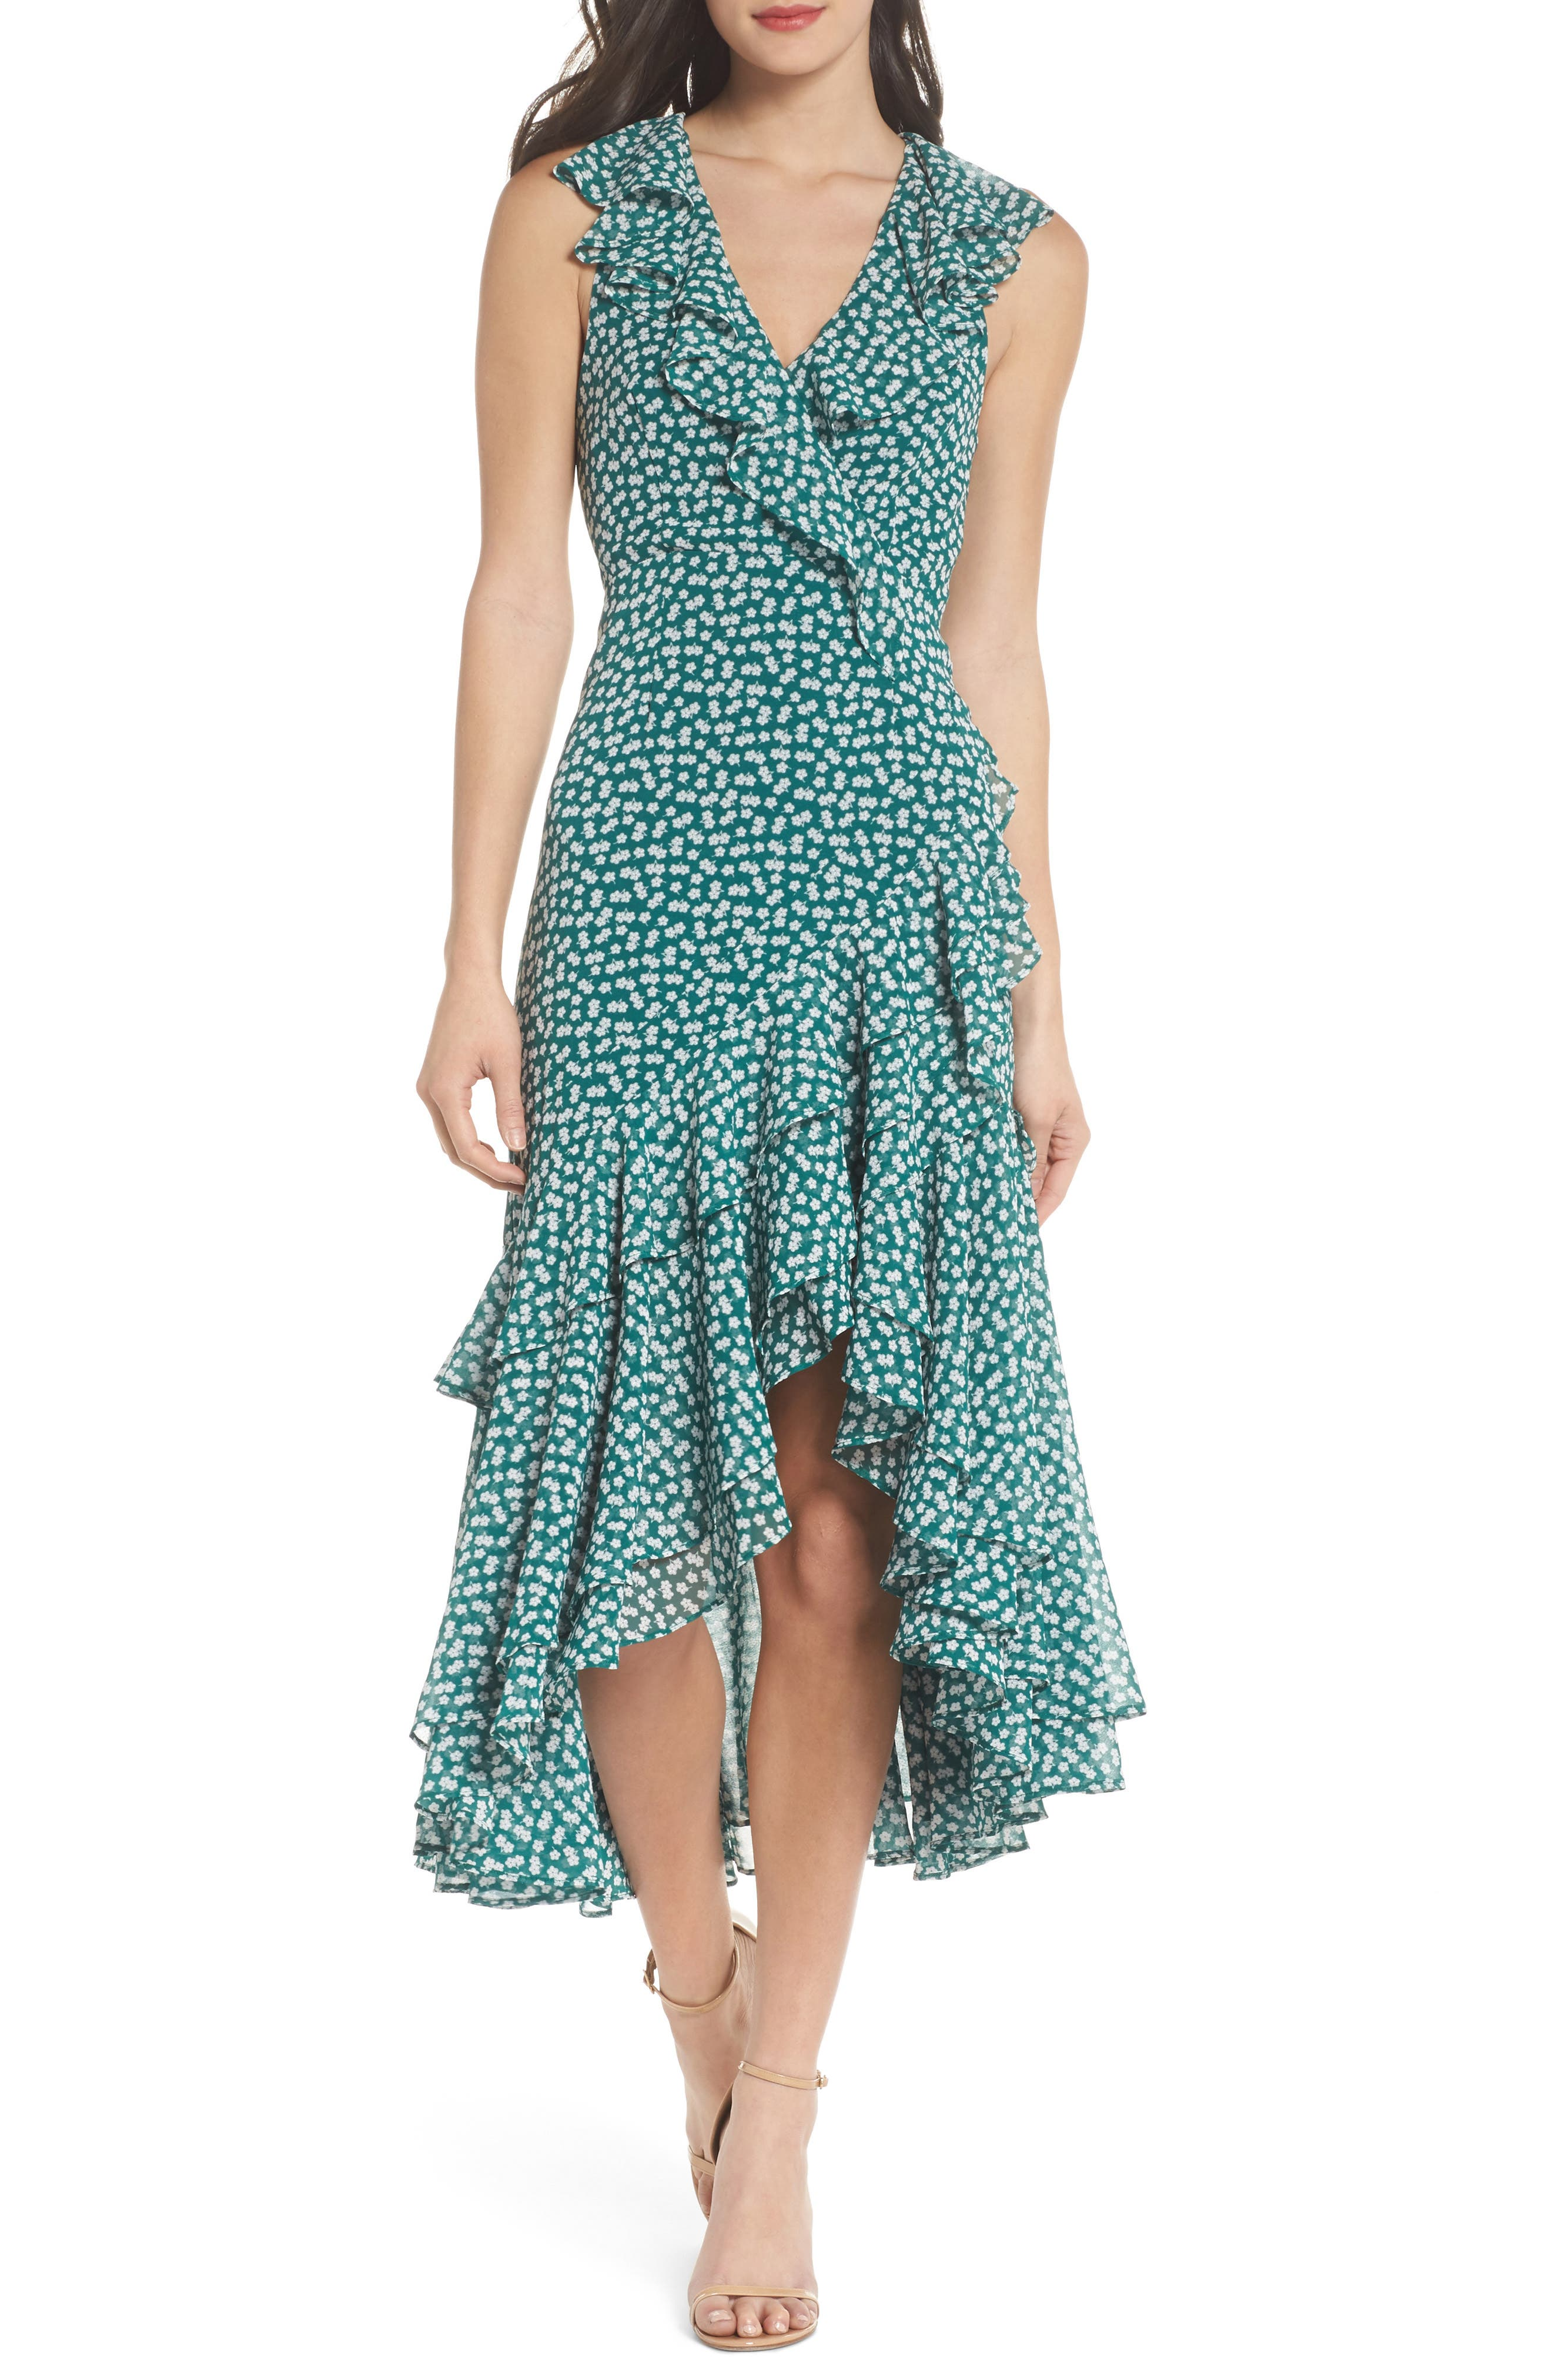 Be About You Ruffle Midi Dress,                         Main,                         color, Green Daisy